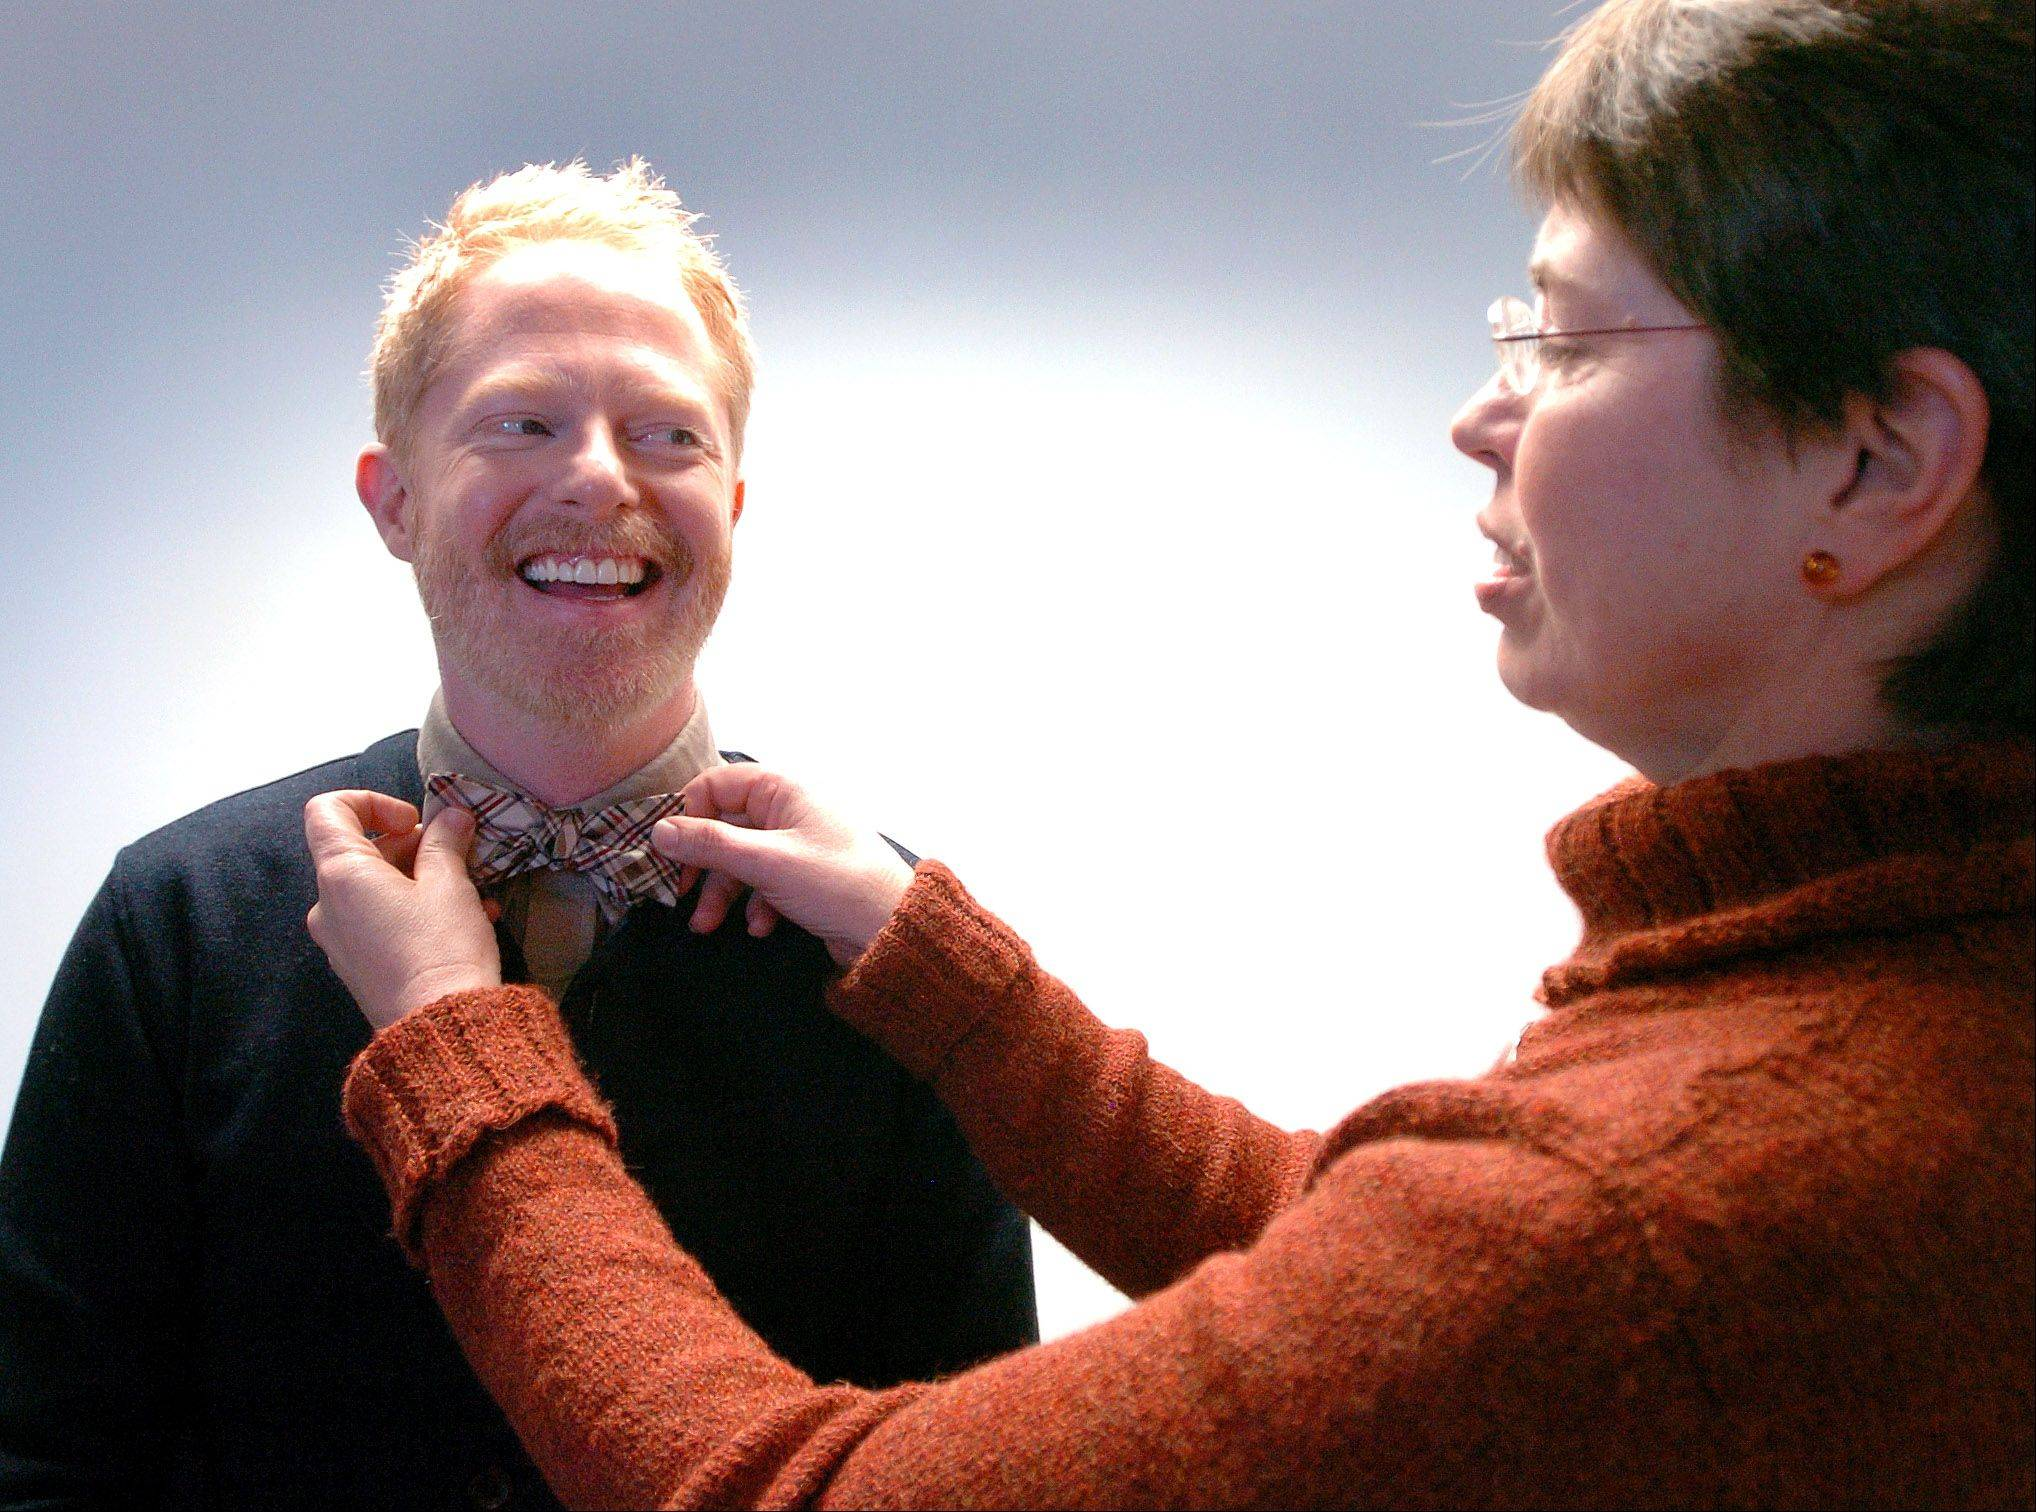 A bow tie always makes a fashion statement, but gay activist and actor Jesse Tyler Ferguson, getting a tie adjustment from Lt. Gov. Sheila Simon during a trip this month to Naperville, is making a political statement with his Tie The Knot campaign to support marriage equality.